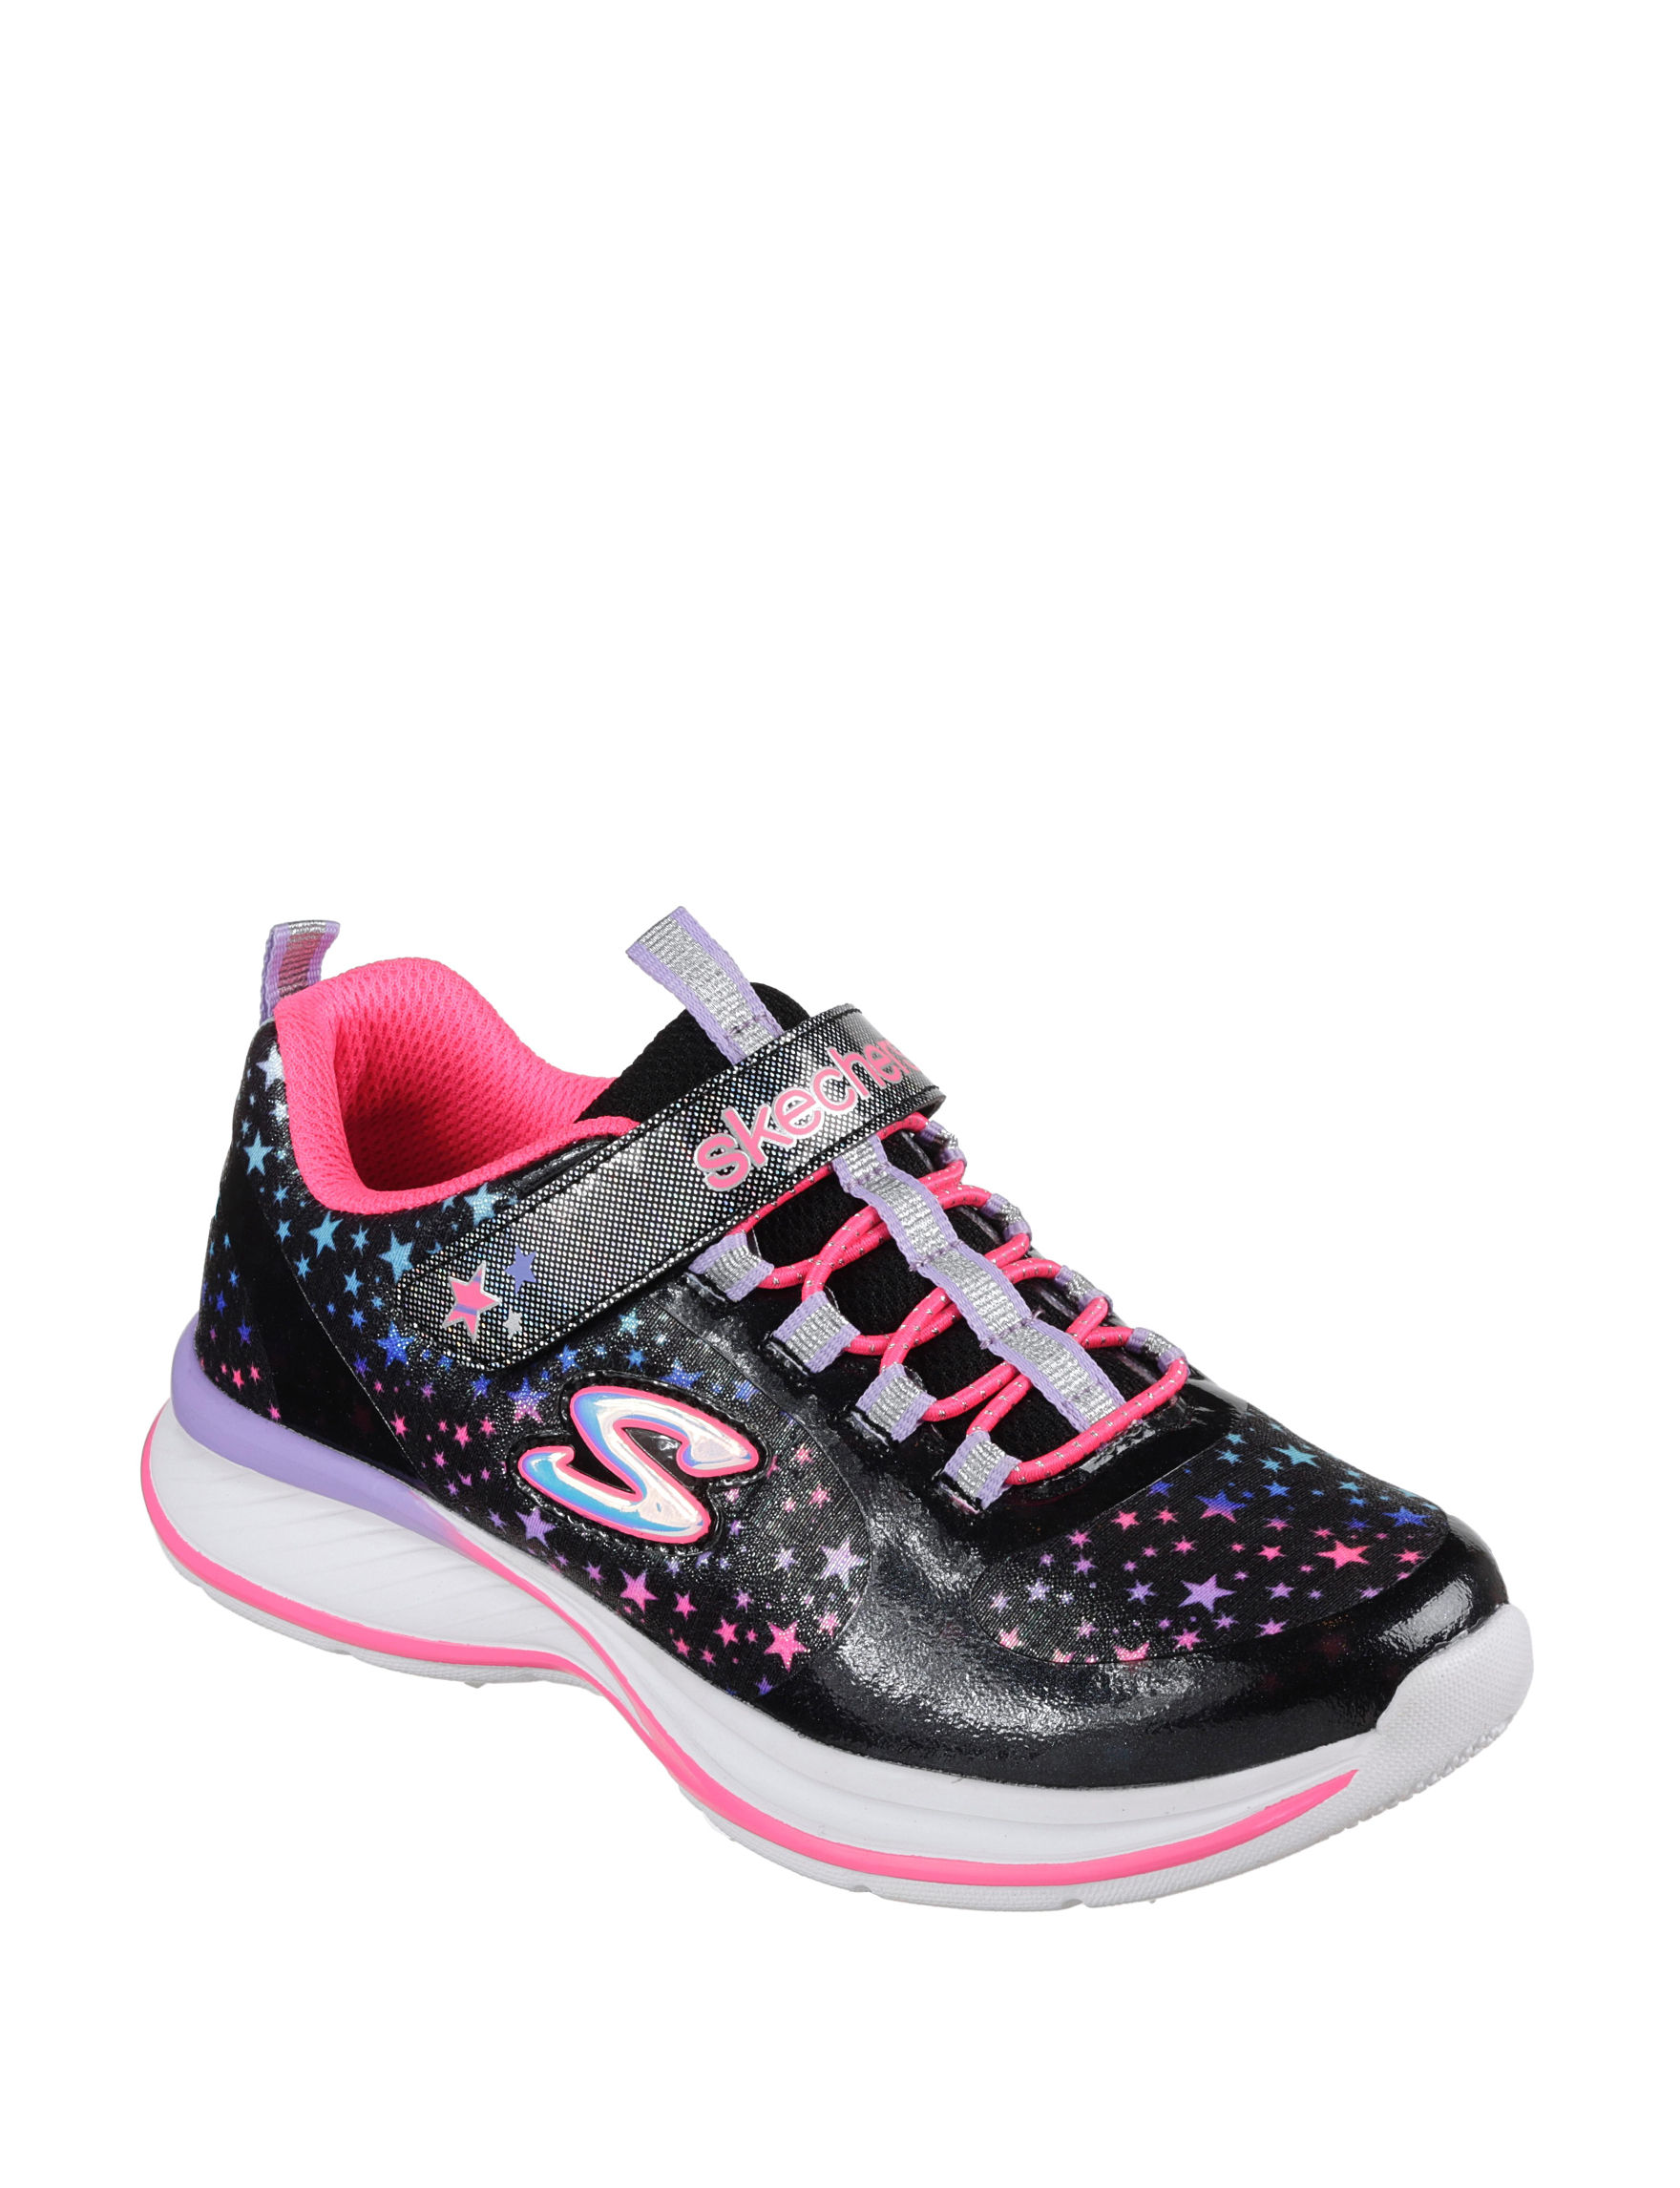 Skechers Black Multi